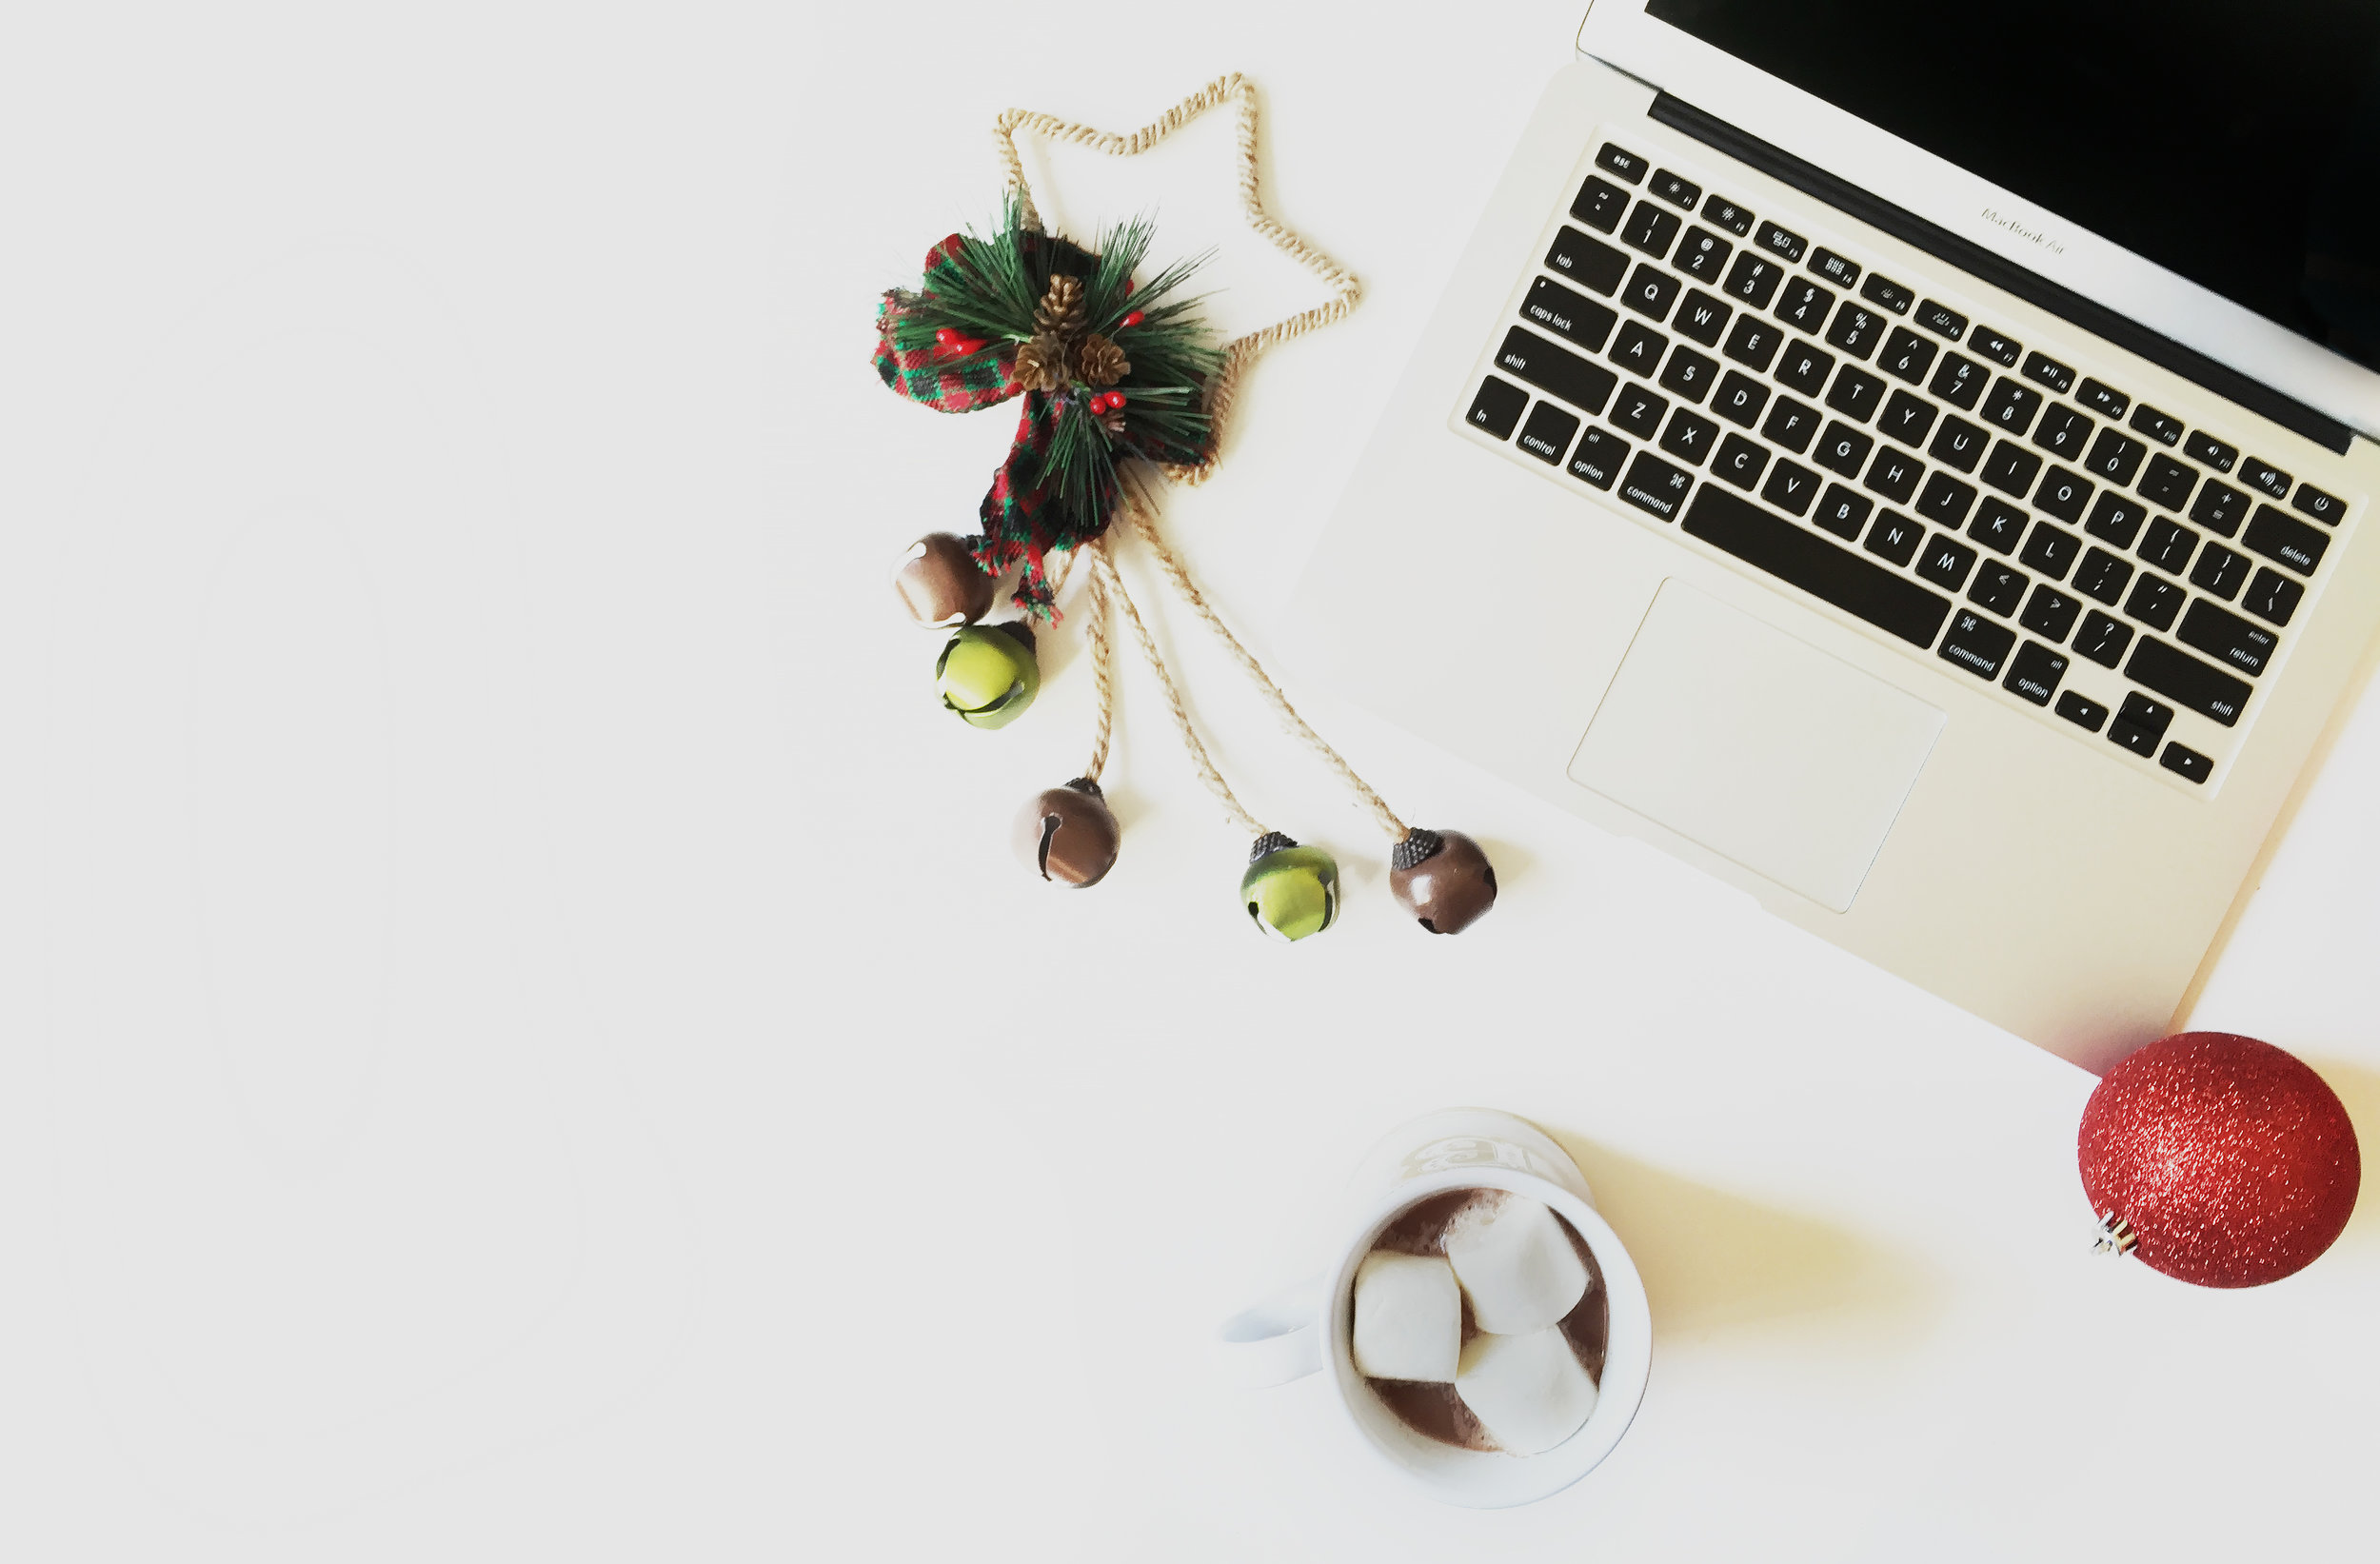 Free stock photo for Christmas, holiday, December for small business owners, solopreneurs, etsy shop owners